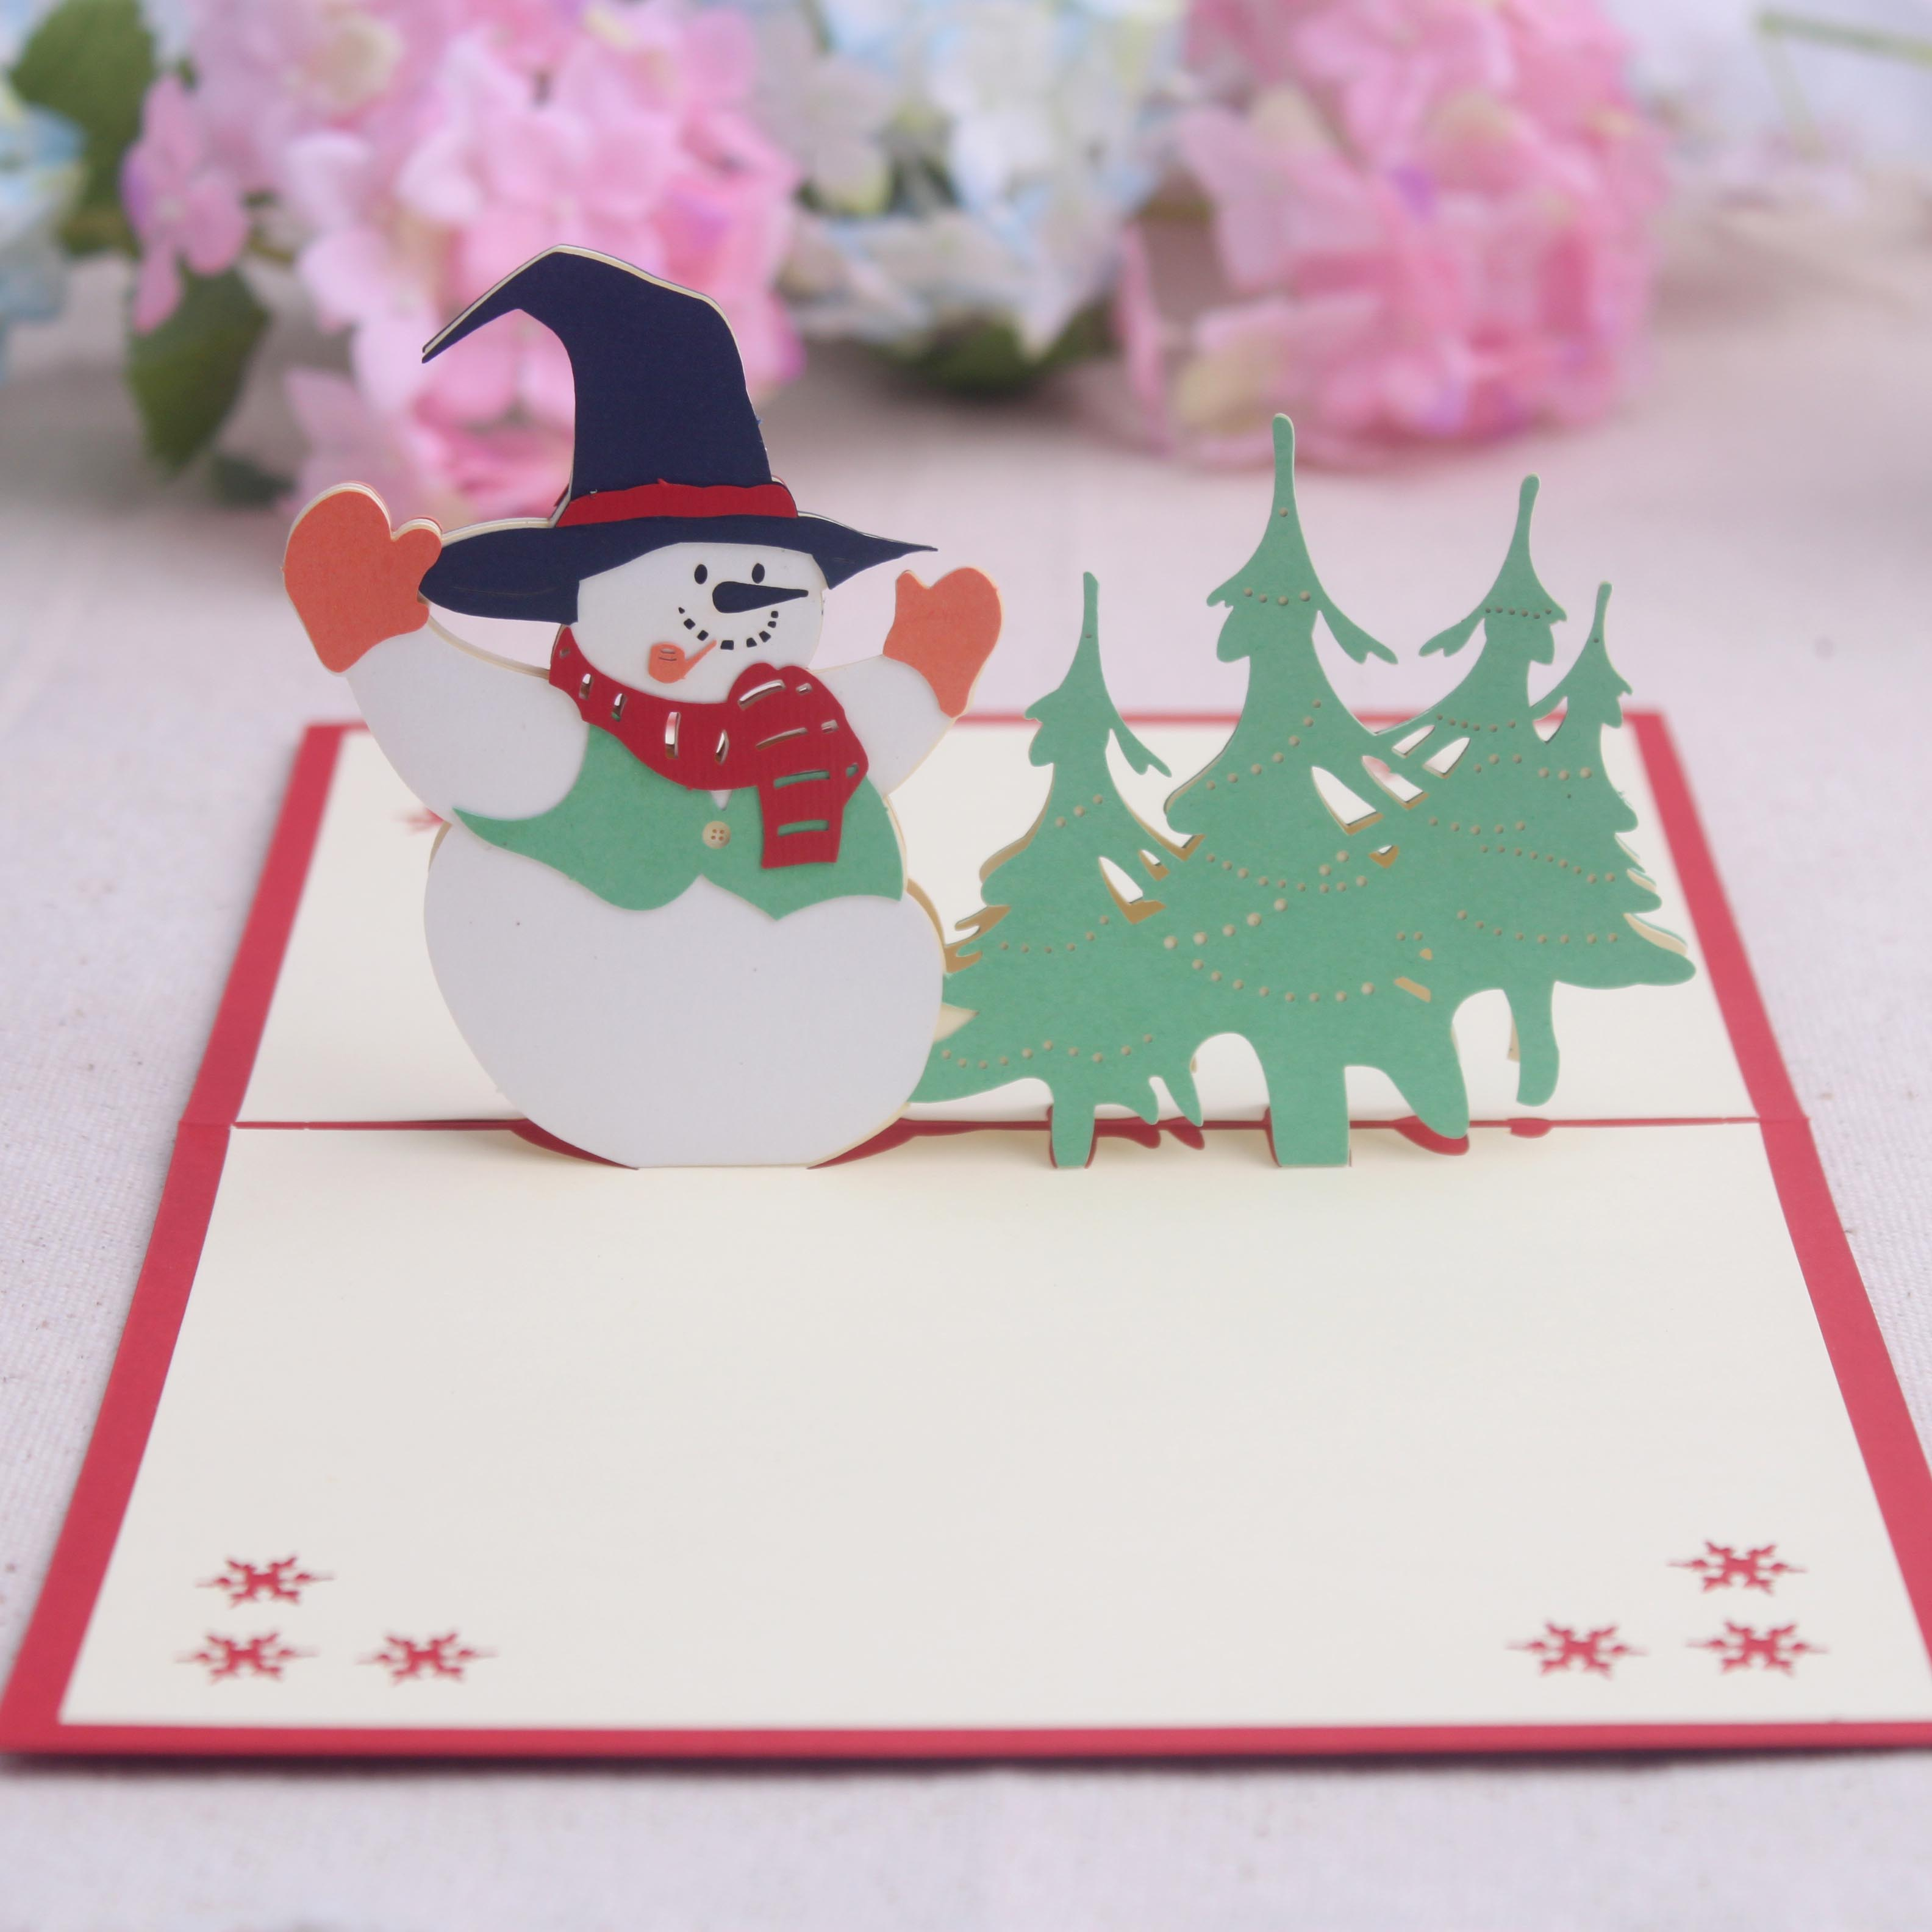 Get Quotations Commodities Ni Korea Handmade Christmas Tree Snowman 3d Paper Sculpture Creative Custom Cards New Year